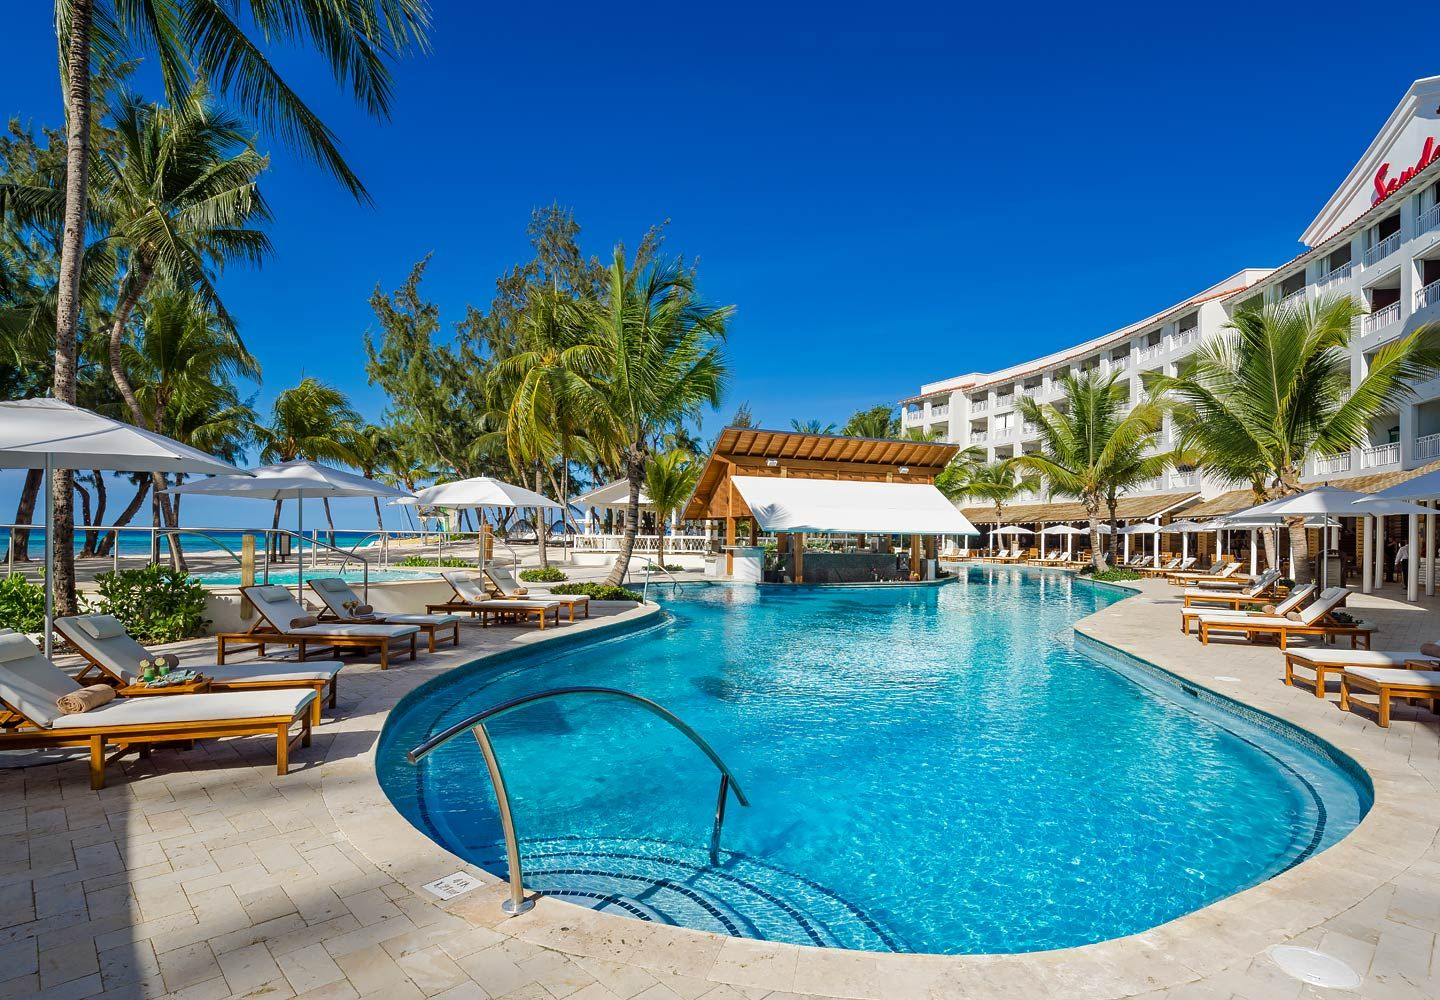 Sandals all inclusive Caribbean vacation packages and